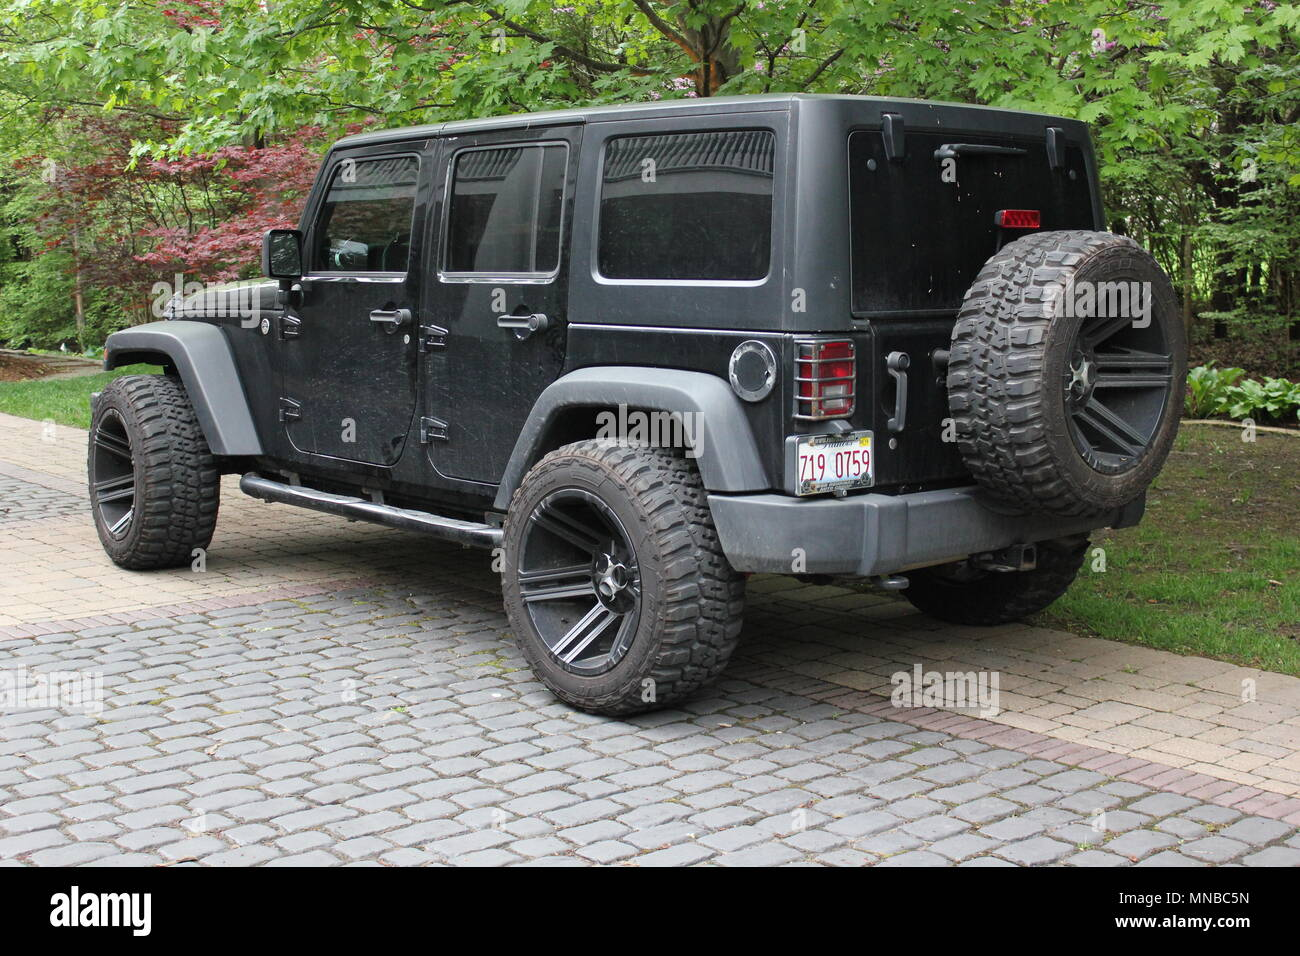 Black Jeep High Resolution Stock Photography And Images Alamy